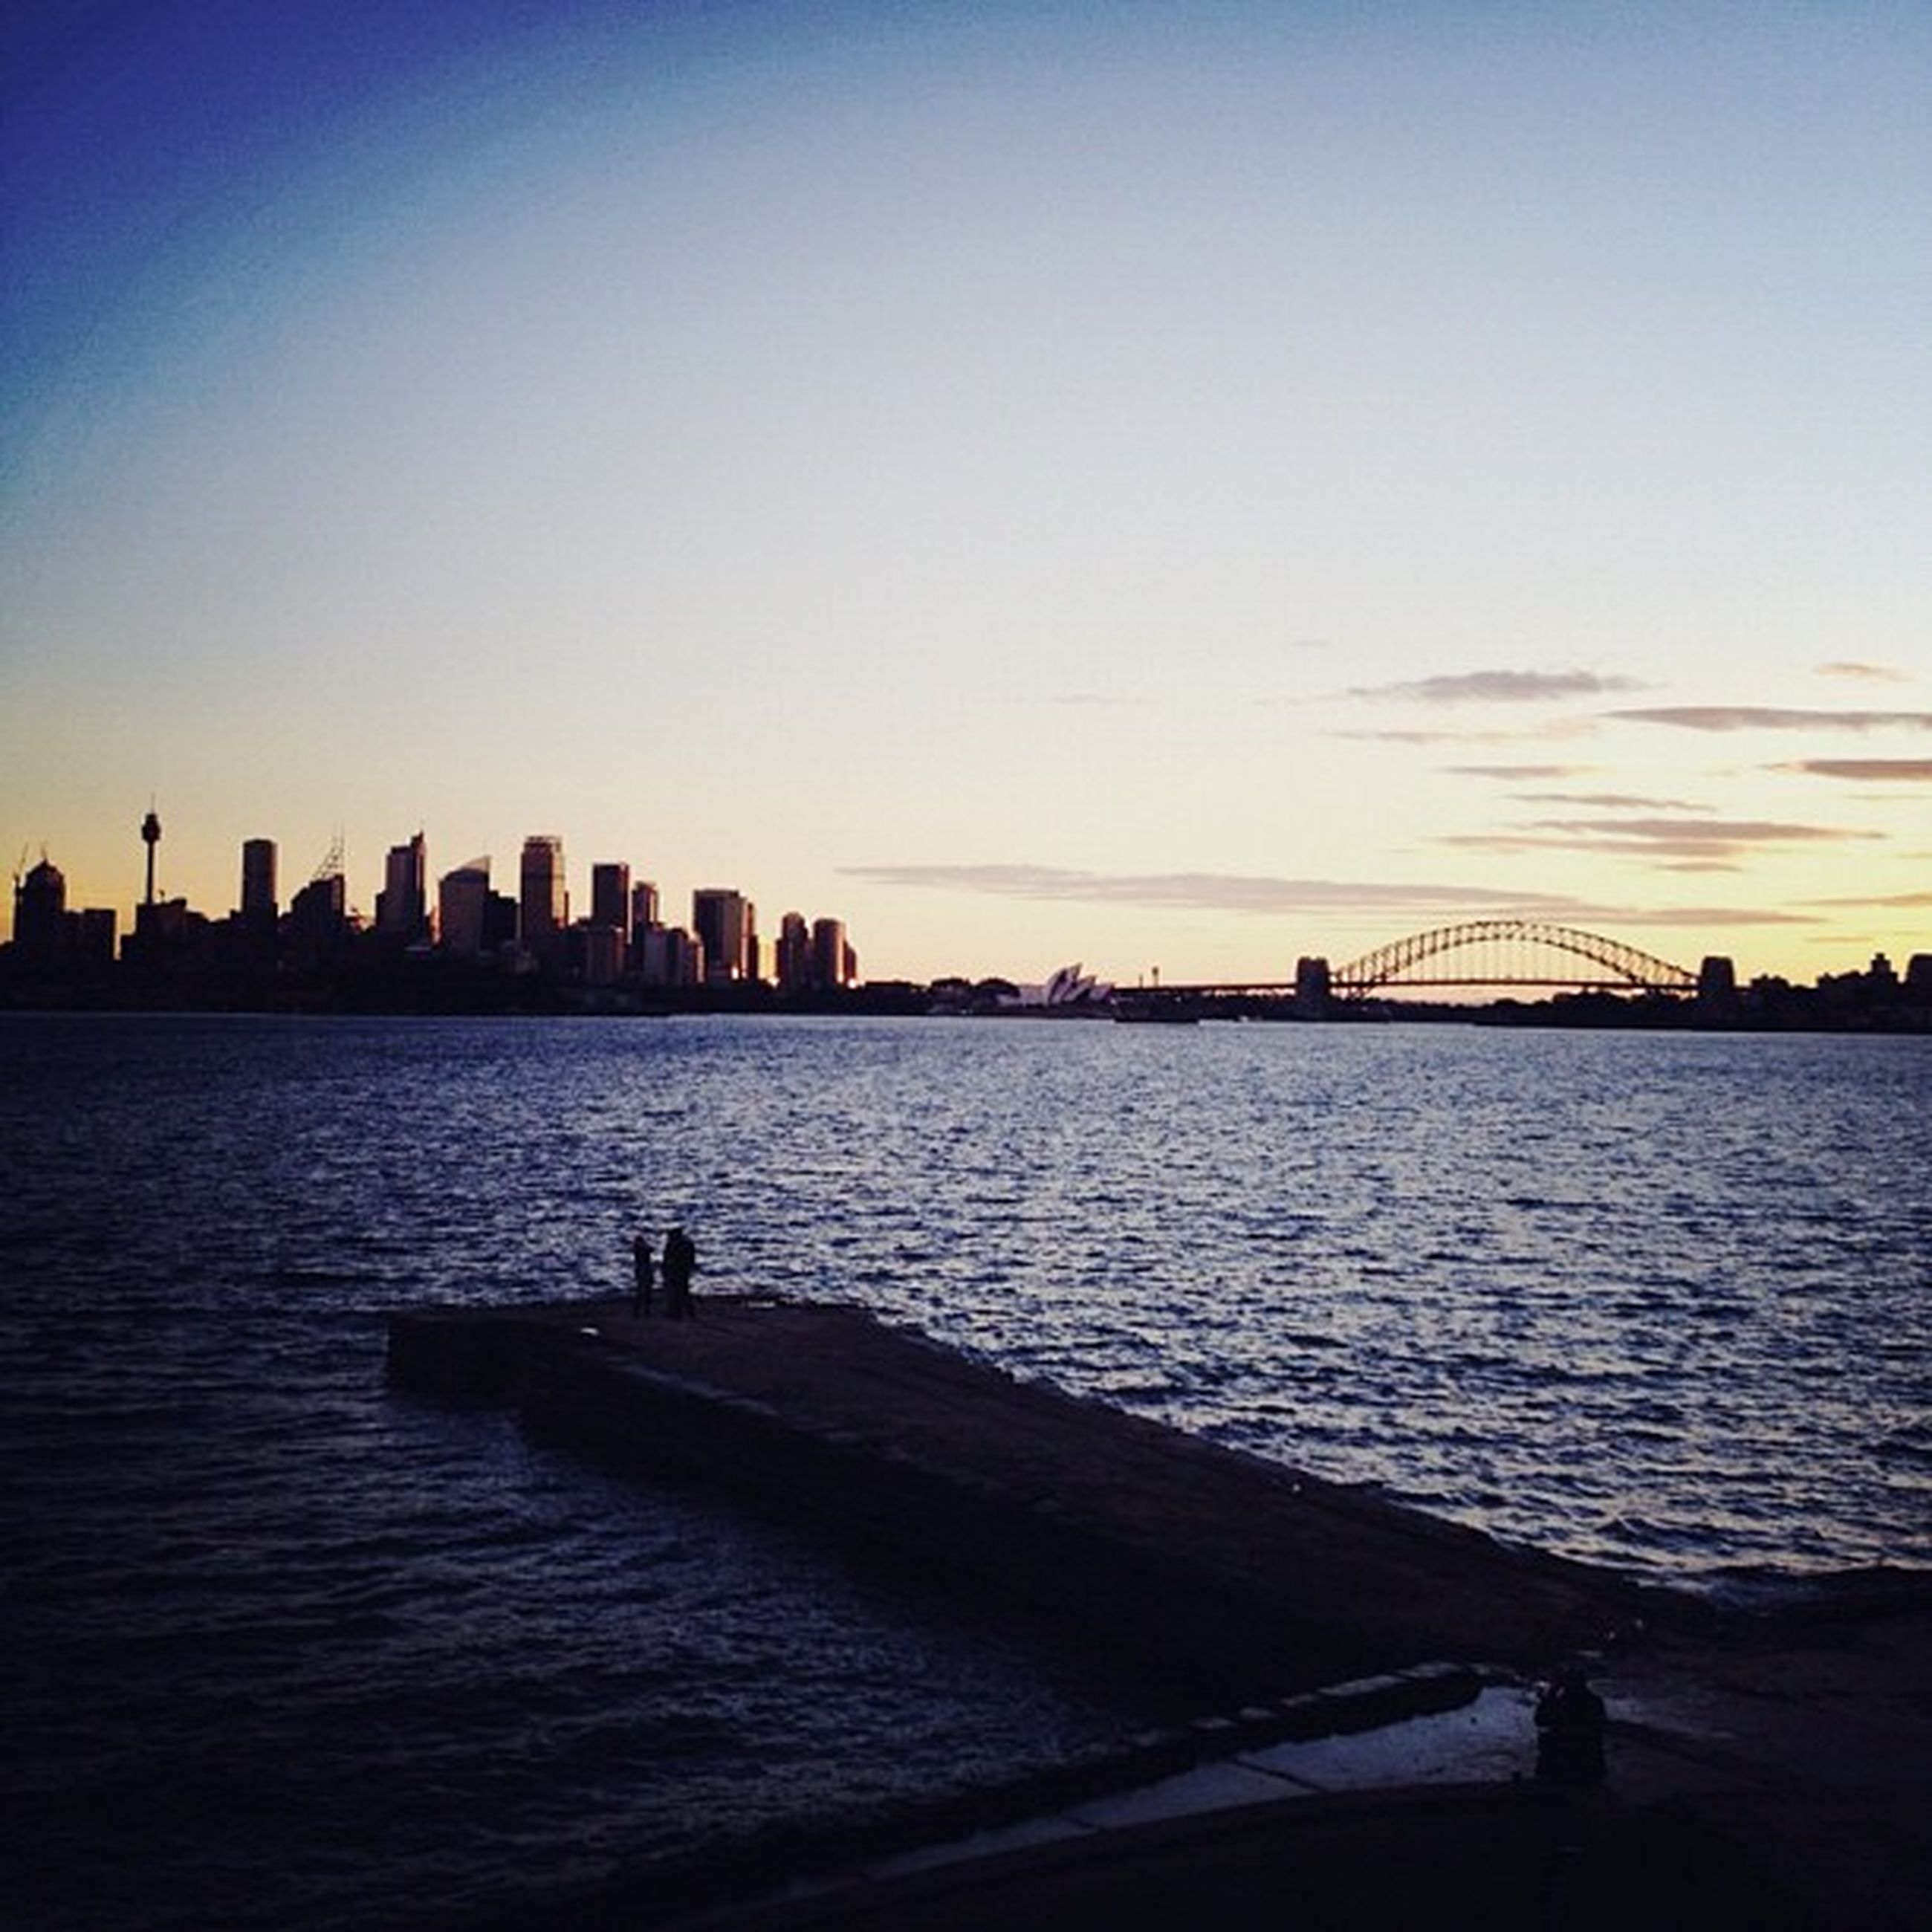 water, architecture, built structure, building exterior, city, sunset, cityscape, river, sea, waterfront, urban skyline, skyscraper, silhouette, copy space, sky, skyline, clear sky, rippled, mid distance, scenics